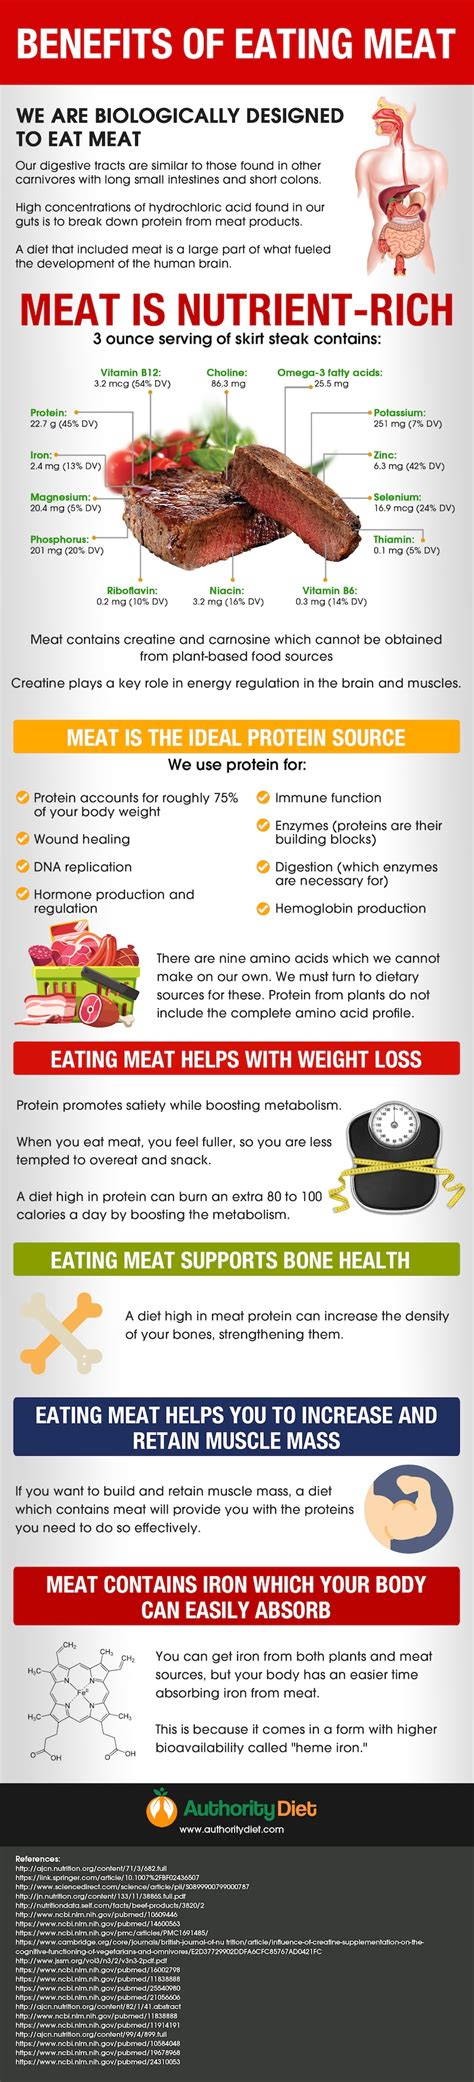 Health Benefits Of Eating Meat [infographic]